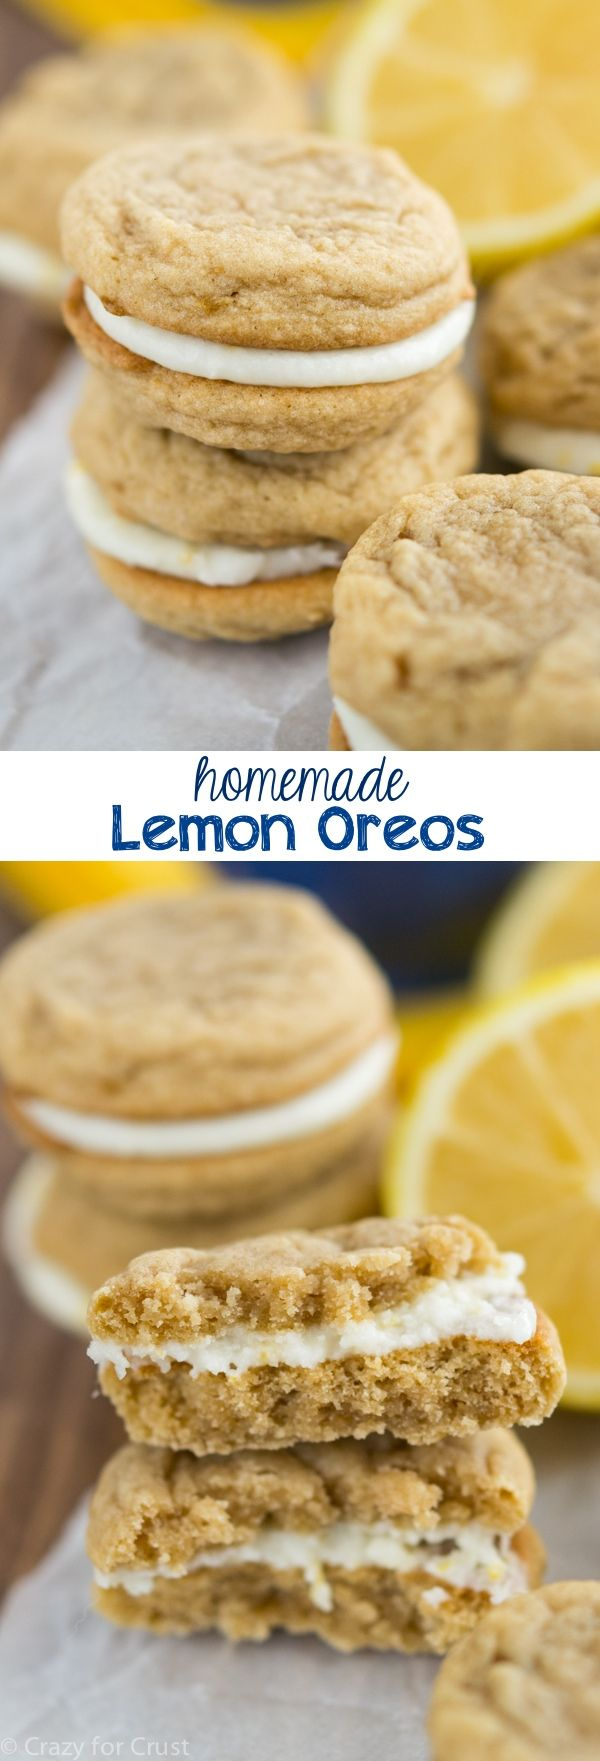 Homemade Lemon Oreos - Crazy for Crust